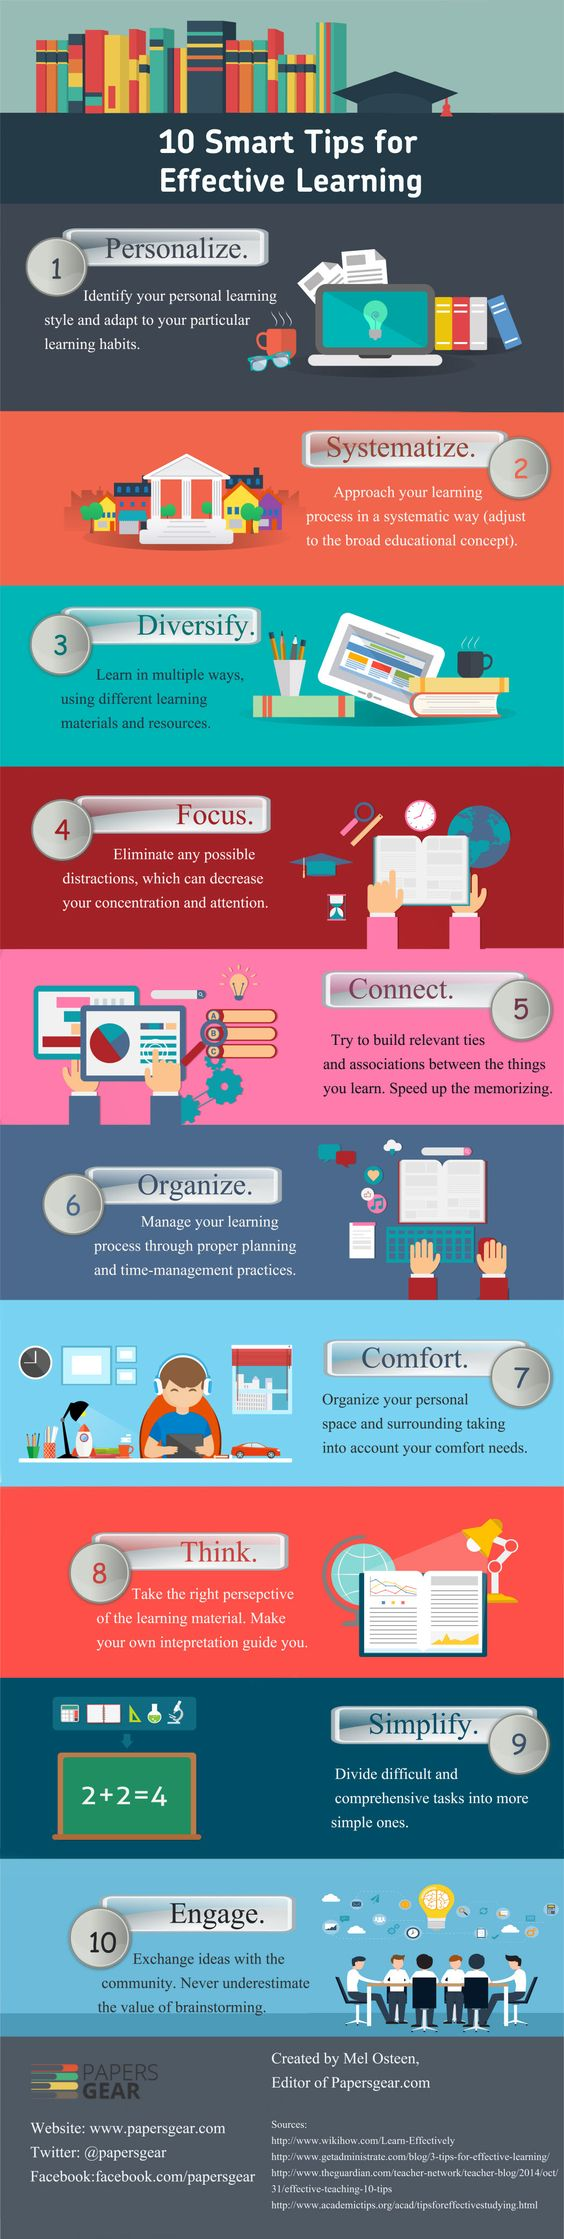 Kinetic learning self directed learning programs samples - 10 Smart Tips For Effective Learning Infographic Http Elearninginfographics Com